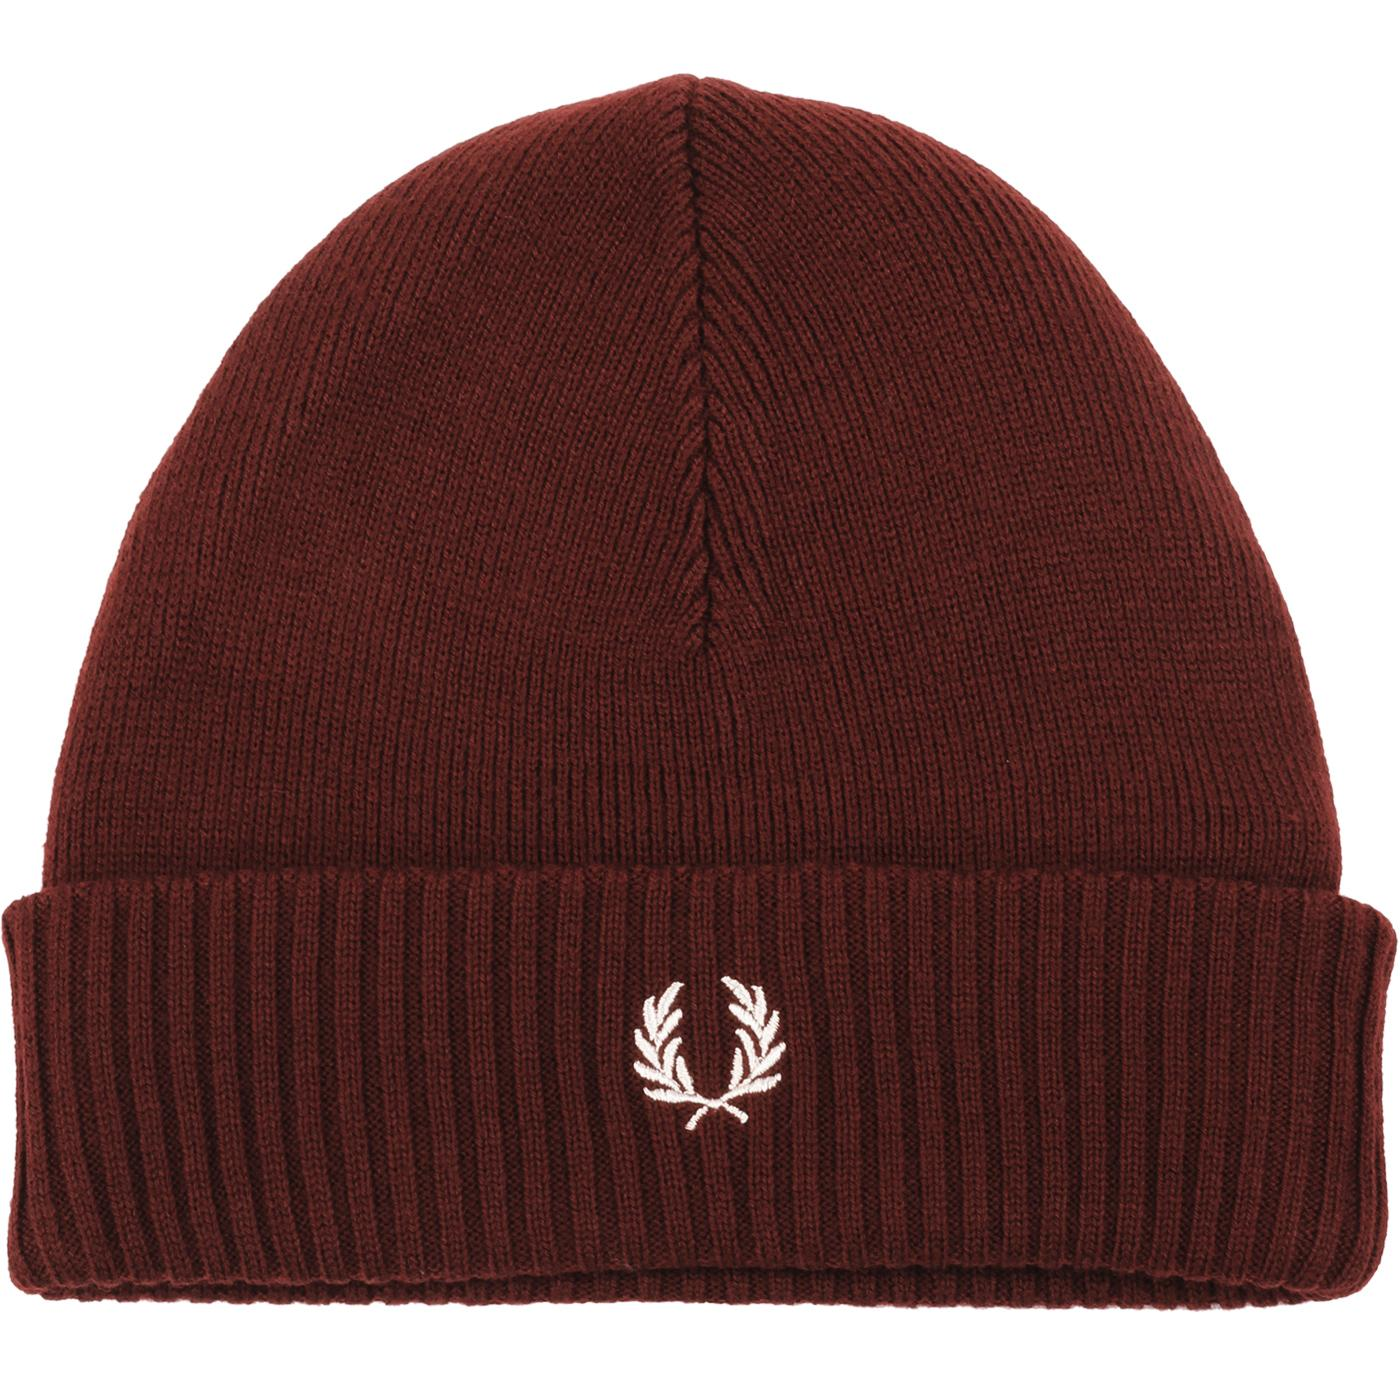 FRED PERRY Retro Roll Up Beanie Hat (Stadium Red)